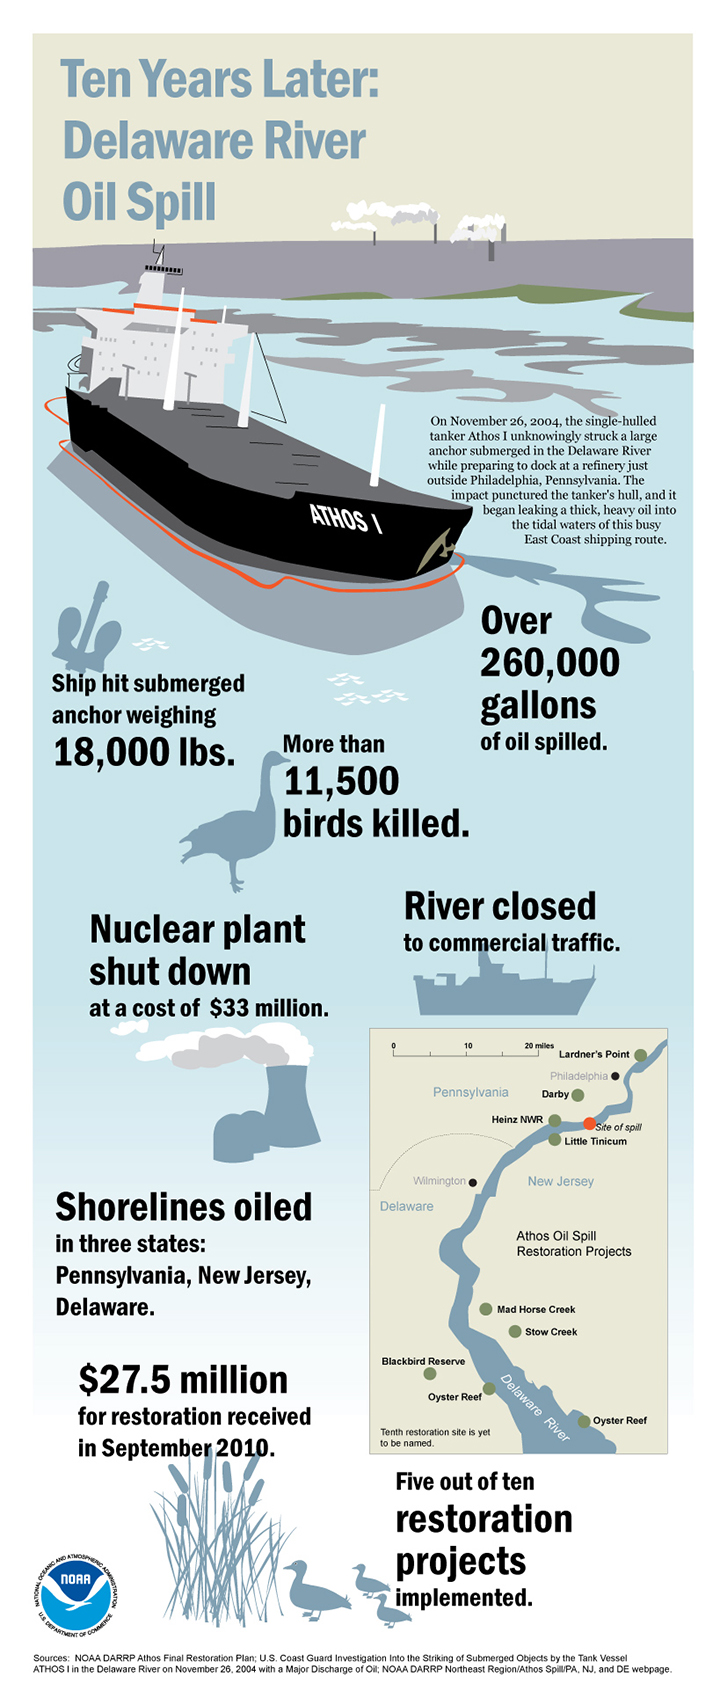 Infographic of Athos I oil spill with ship, facts about the spill's impacts, and map of restoration projects. Ship hit submerged anchor weighting 18,000 pounds. More than 11,500 birds killed. River closed to commercial traffic. Nuclear plant shut down at cost of $33 million. Shorelines oiled in three states. $27.5 million received for restoration in September 2010. Five out of 10 restoration projects implemented.